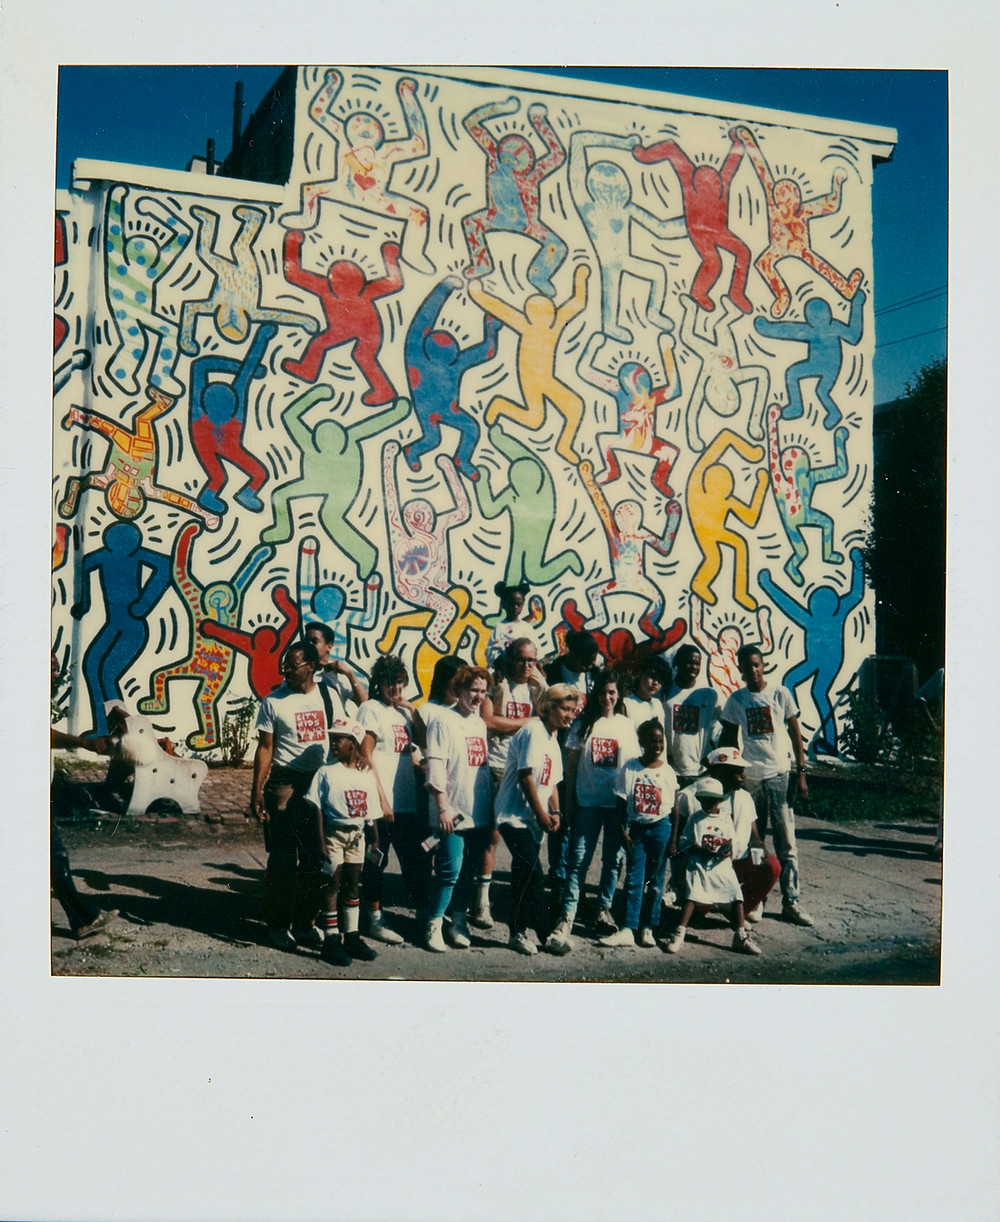 Polaroid and mural by Keith Haring, We the Youth, Philadelphia Mural, 1987. Courtesy of The Keith Haring Foundation Archives. Artworks Advisory